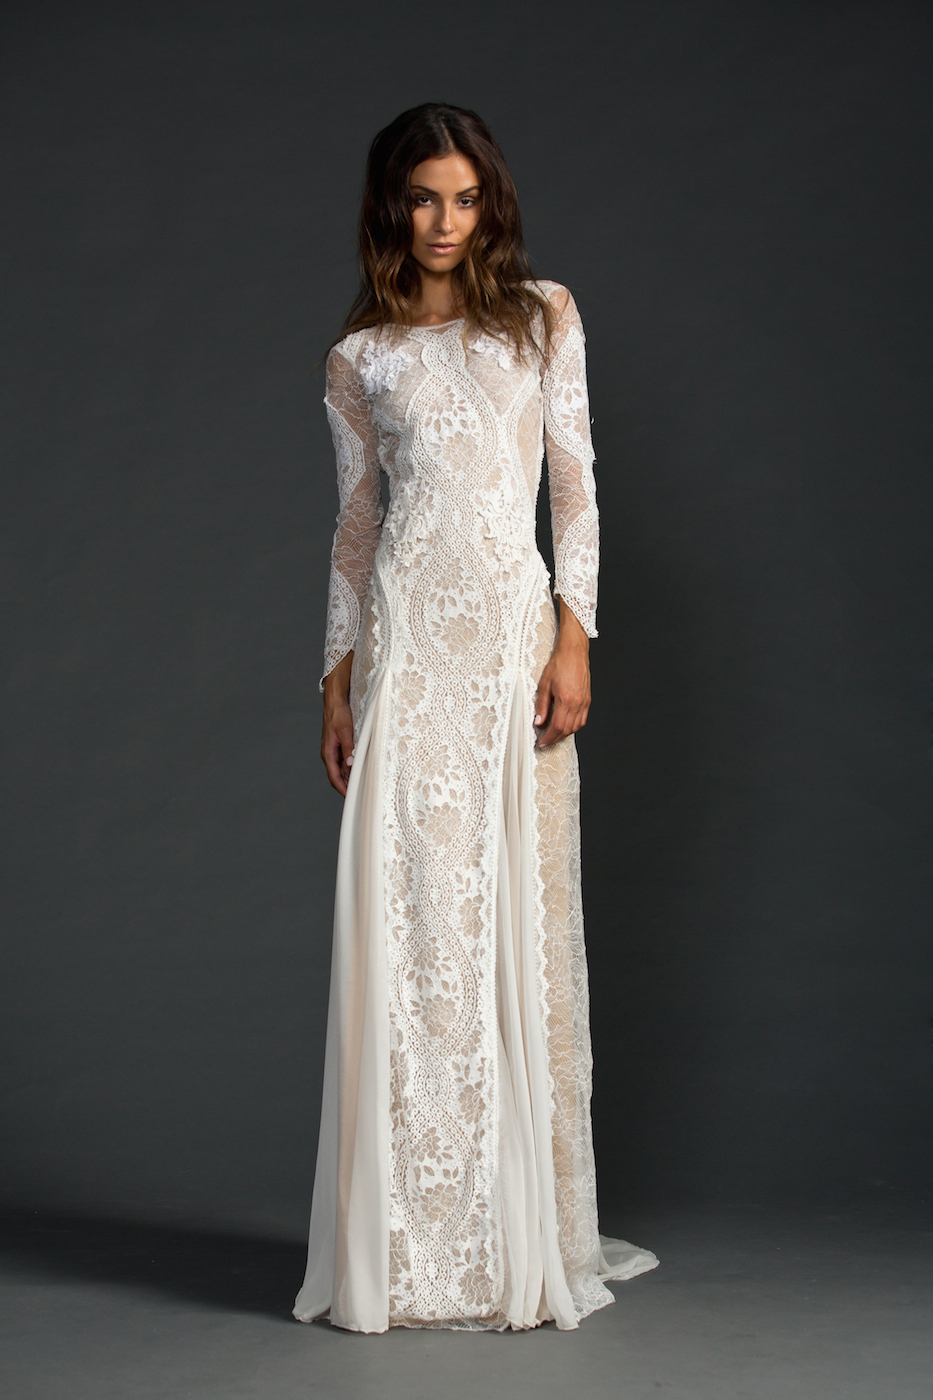 Grace Loves Lace Used, Grace and Lace Wedding Dresses, Vintage Bohemian Wedding Dress, Buy Grace Loves Lace Dress, Hollie Dress Grace Loves Lace, Bohemian Wedding Dresses, Etsy Grace Loves Lace, Grace Loves Lace Reviews